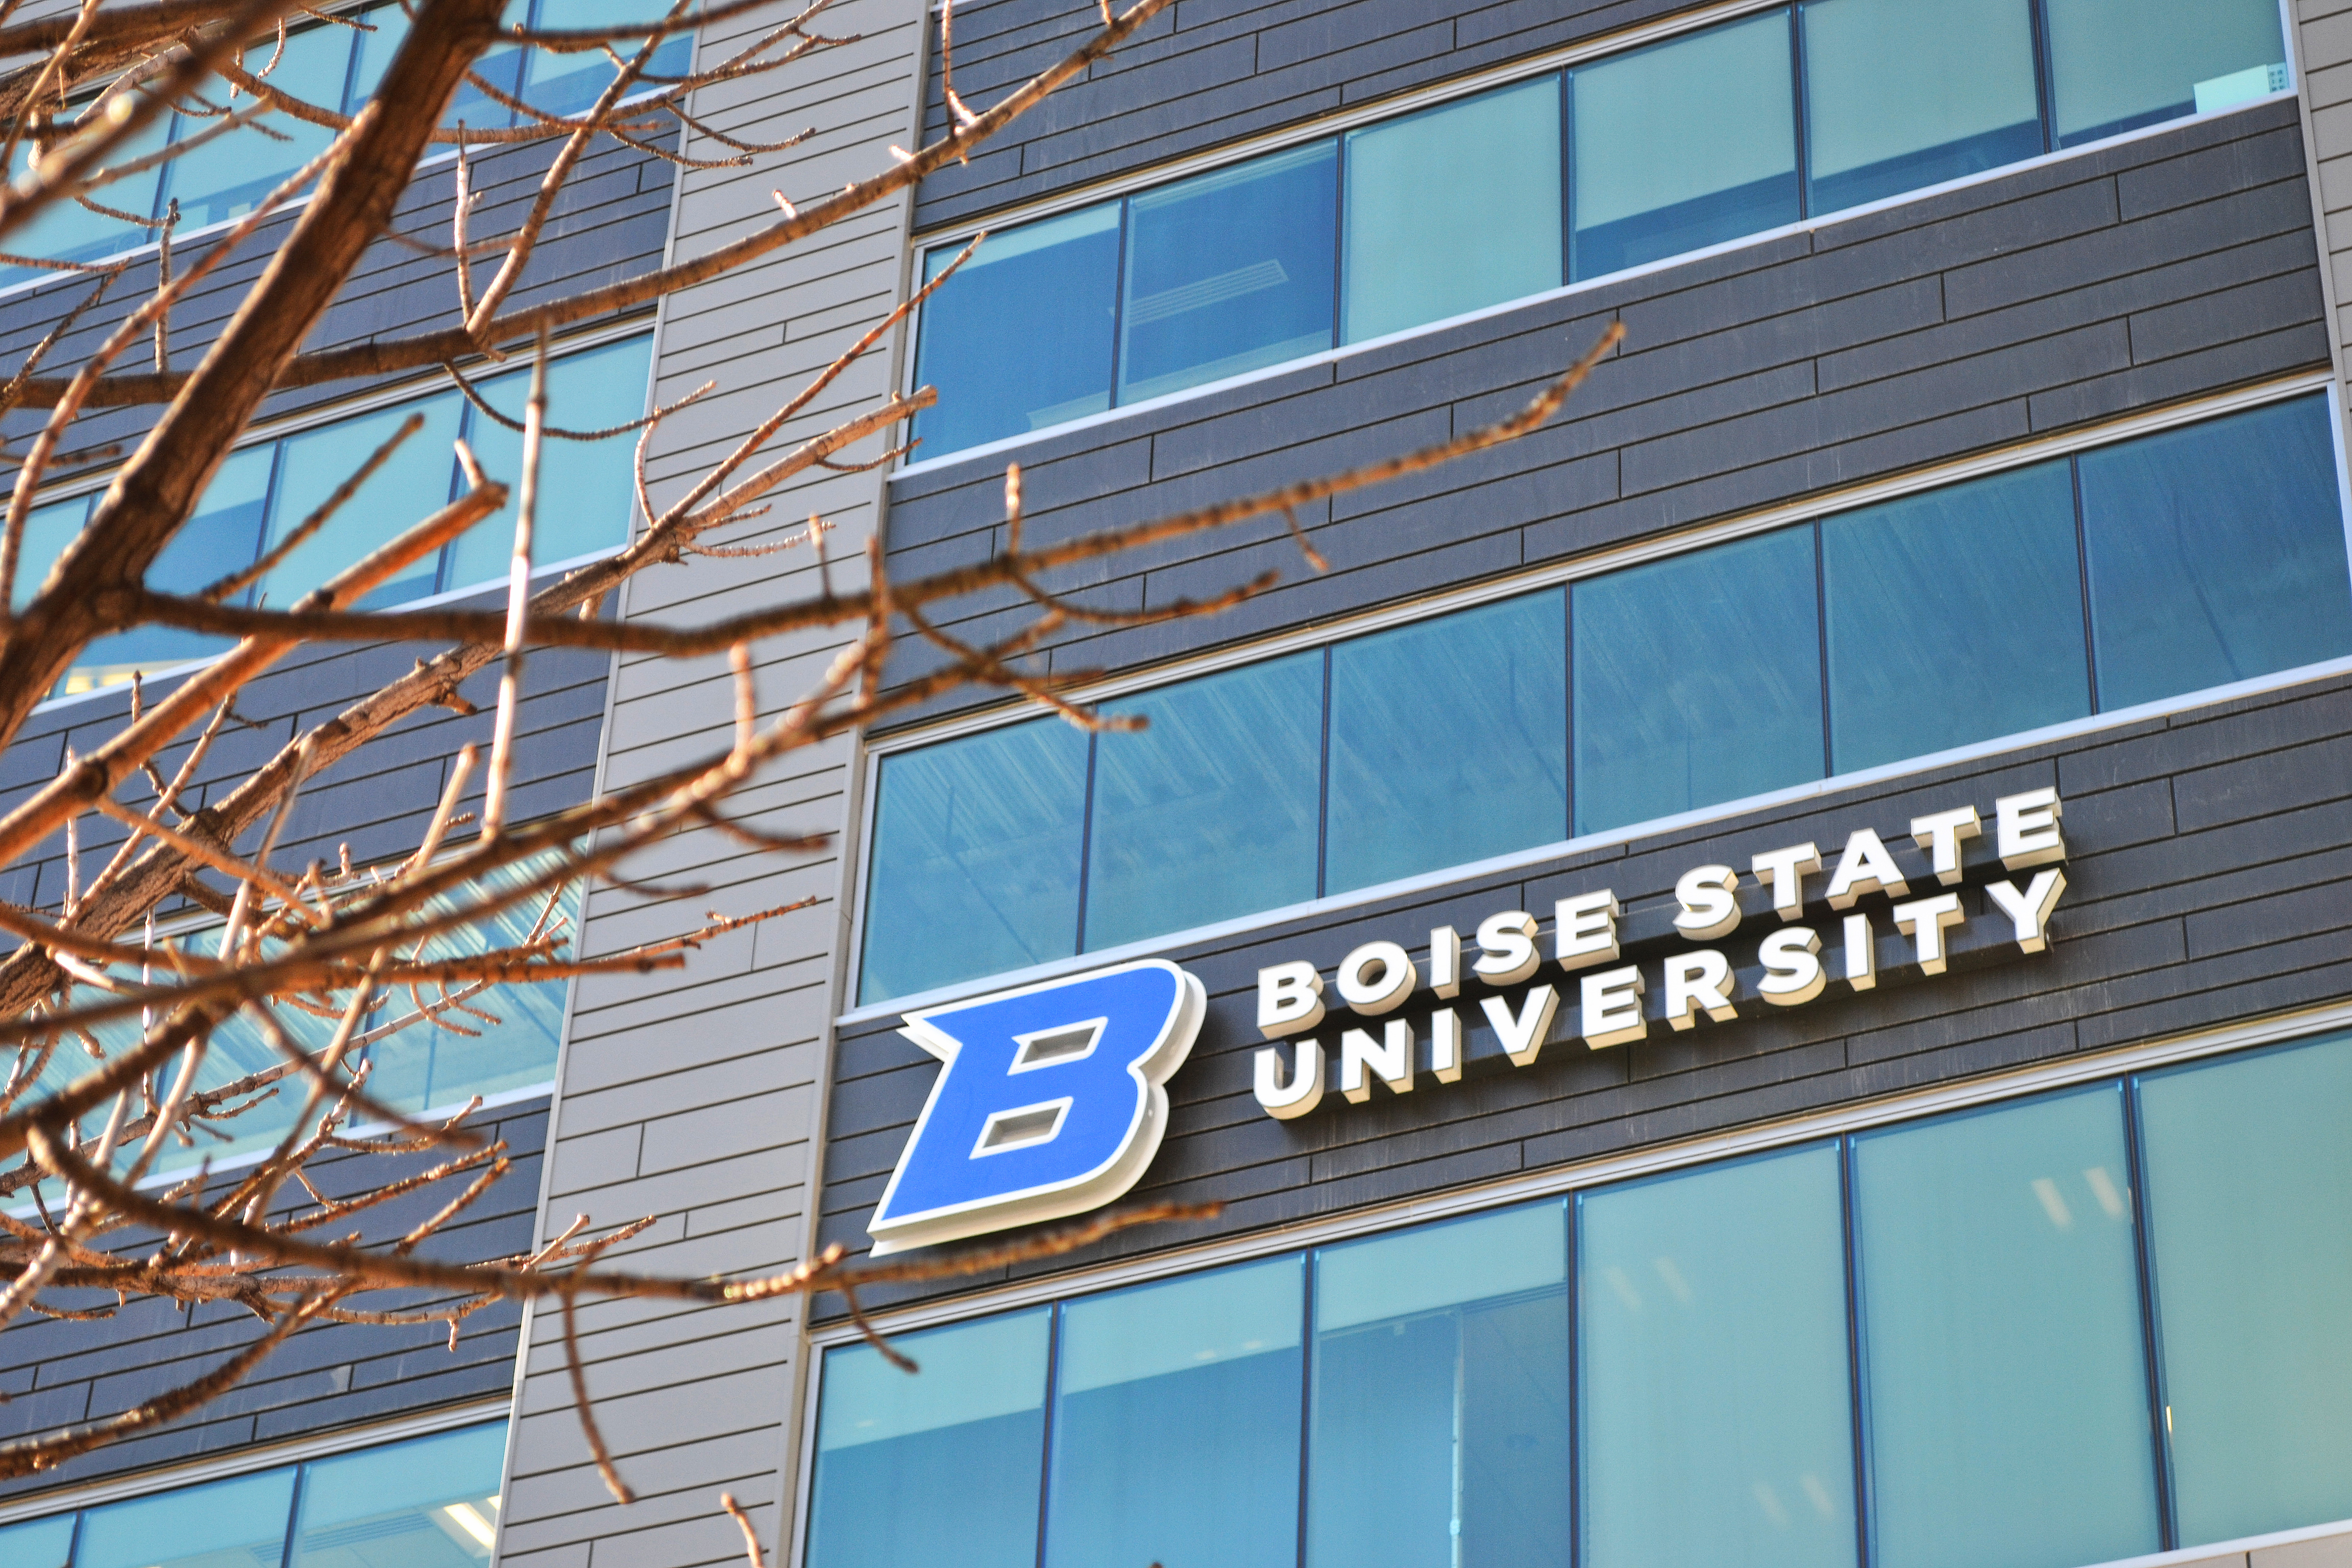 Boise State University Building